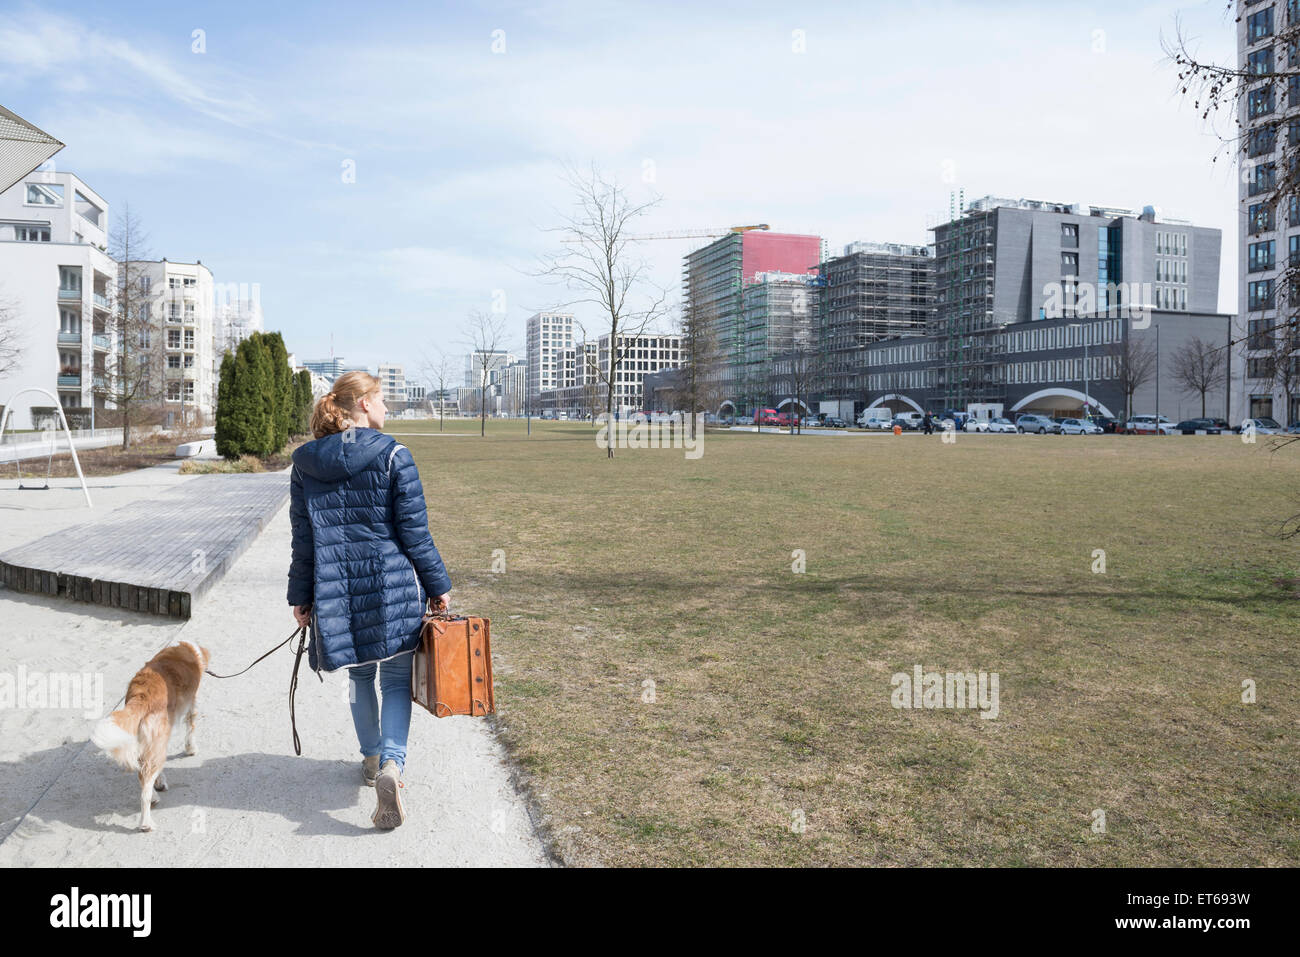 Rear view of woman walking on sidewalk with dog and suitcase, Munich, Bavaria, Germany - Stock Image